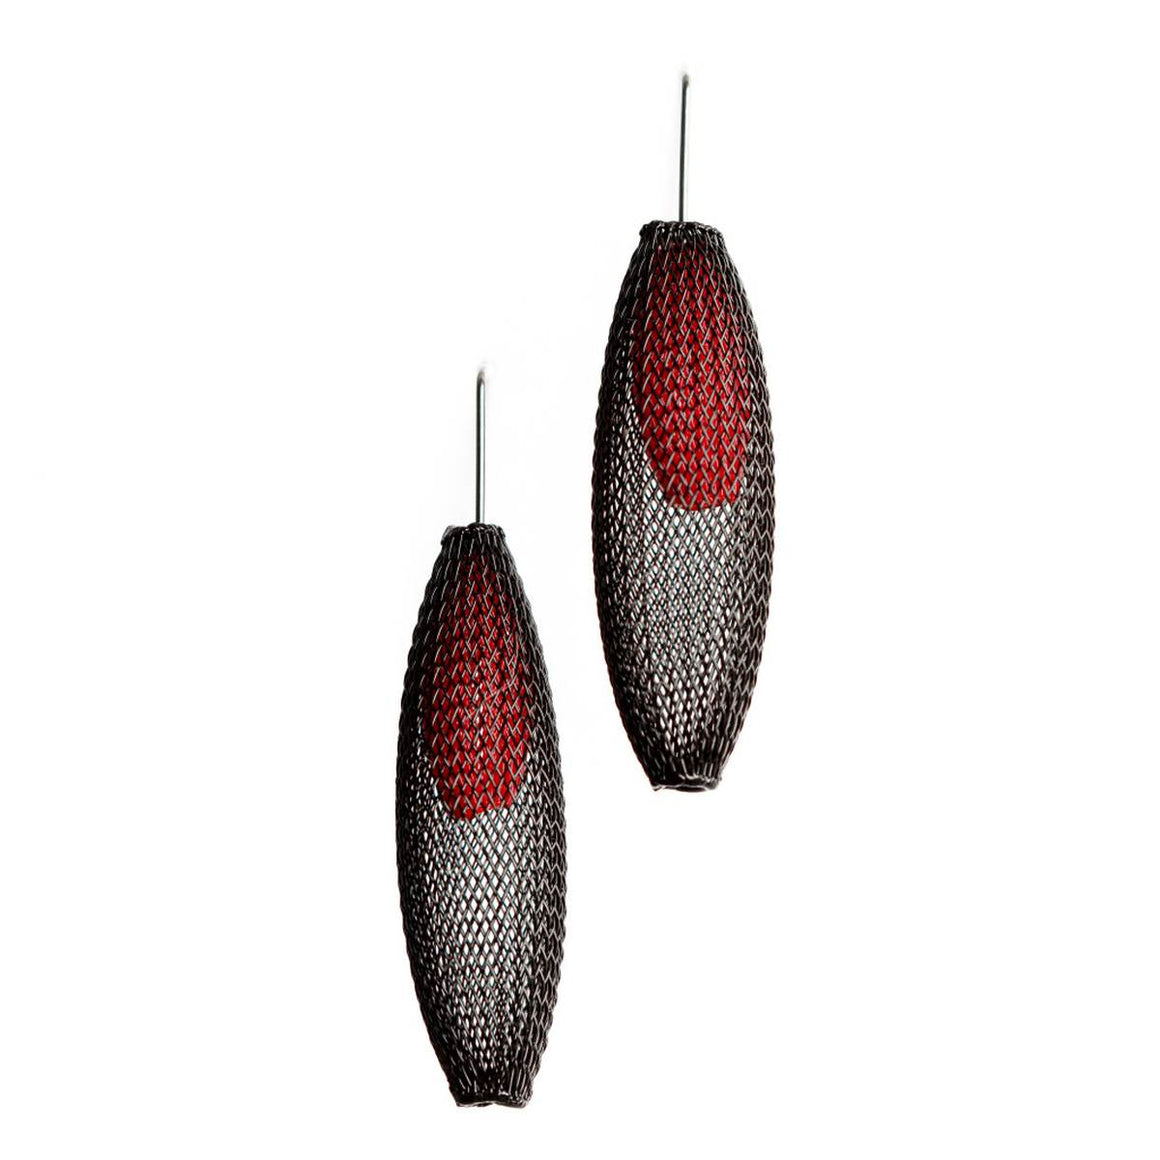 A pair of black and red earrings made from finely woven nylon mesh. Red Mesh tubes are visible contained inside Black mesh tubes.